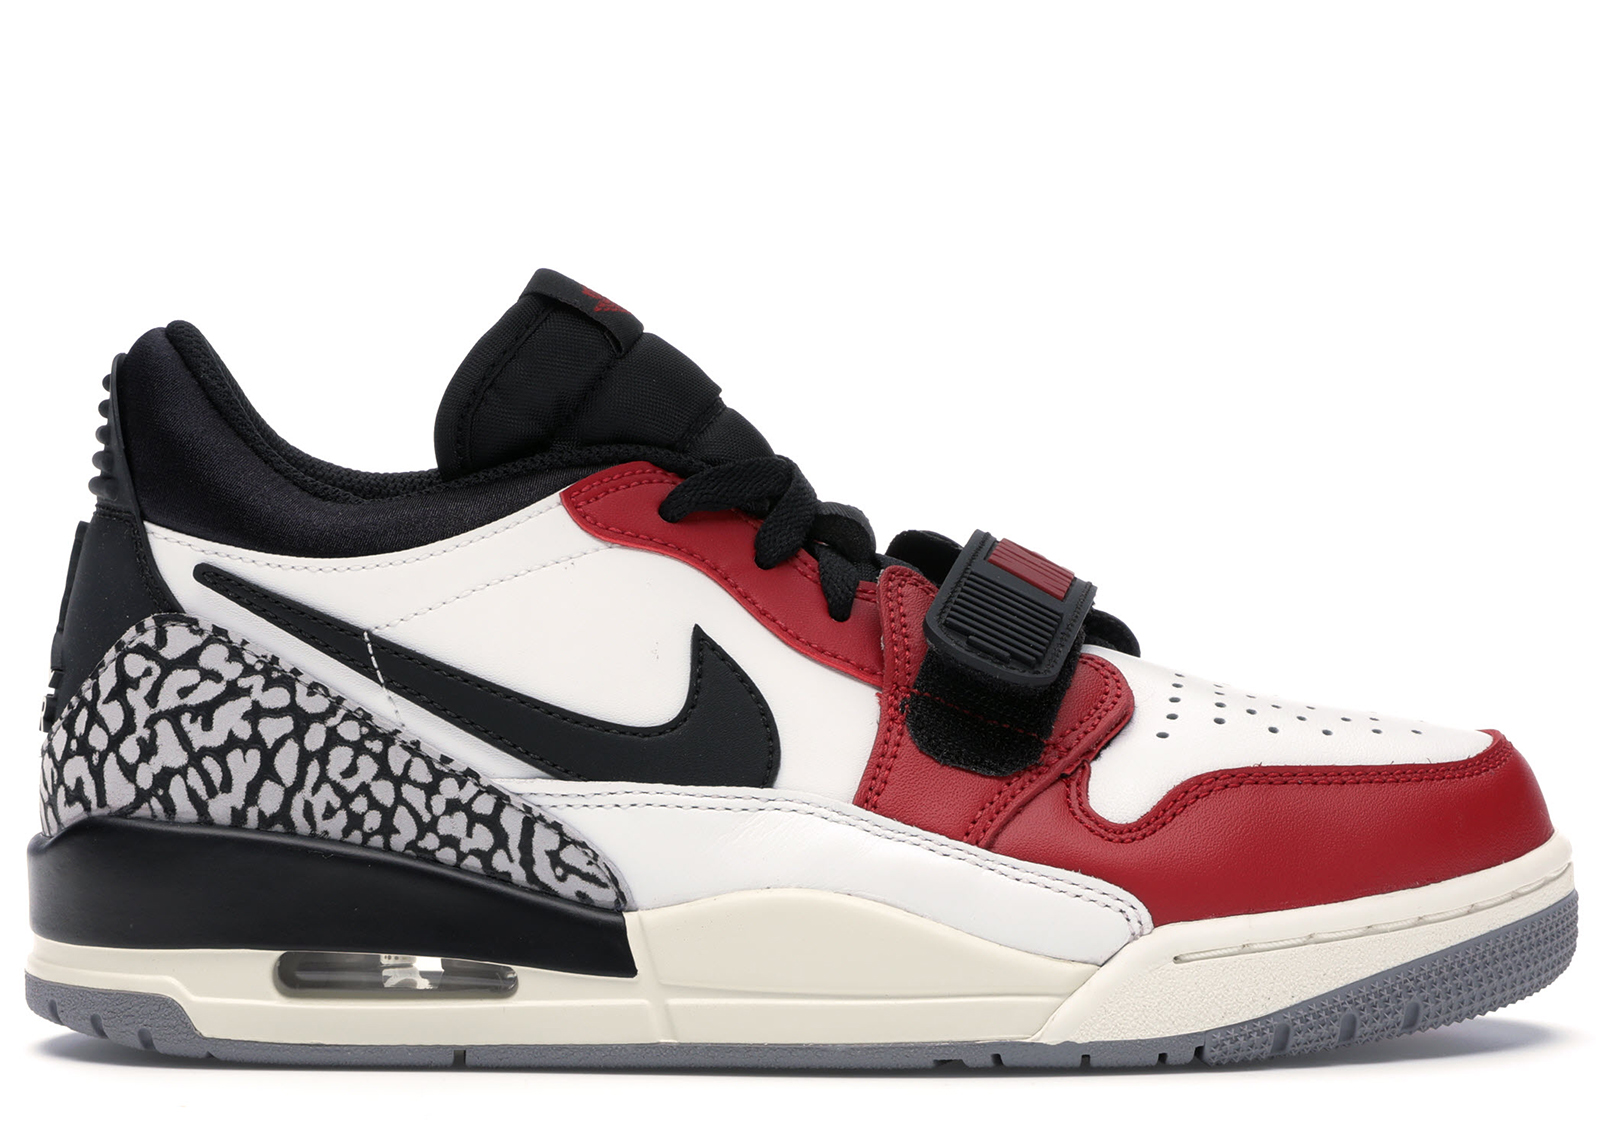 air jordan legacy 312 low chicago